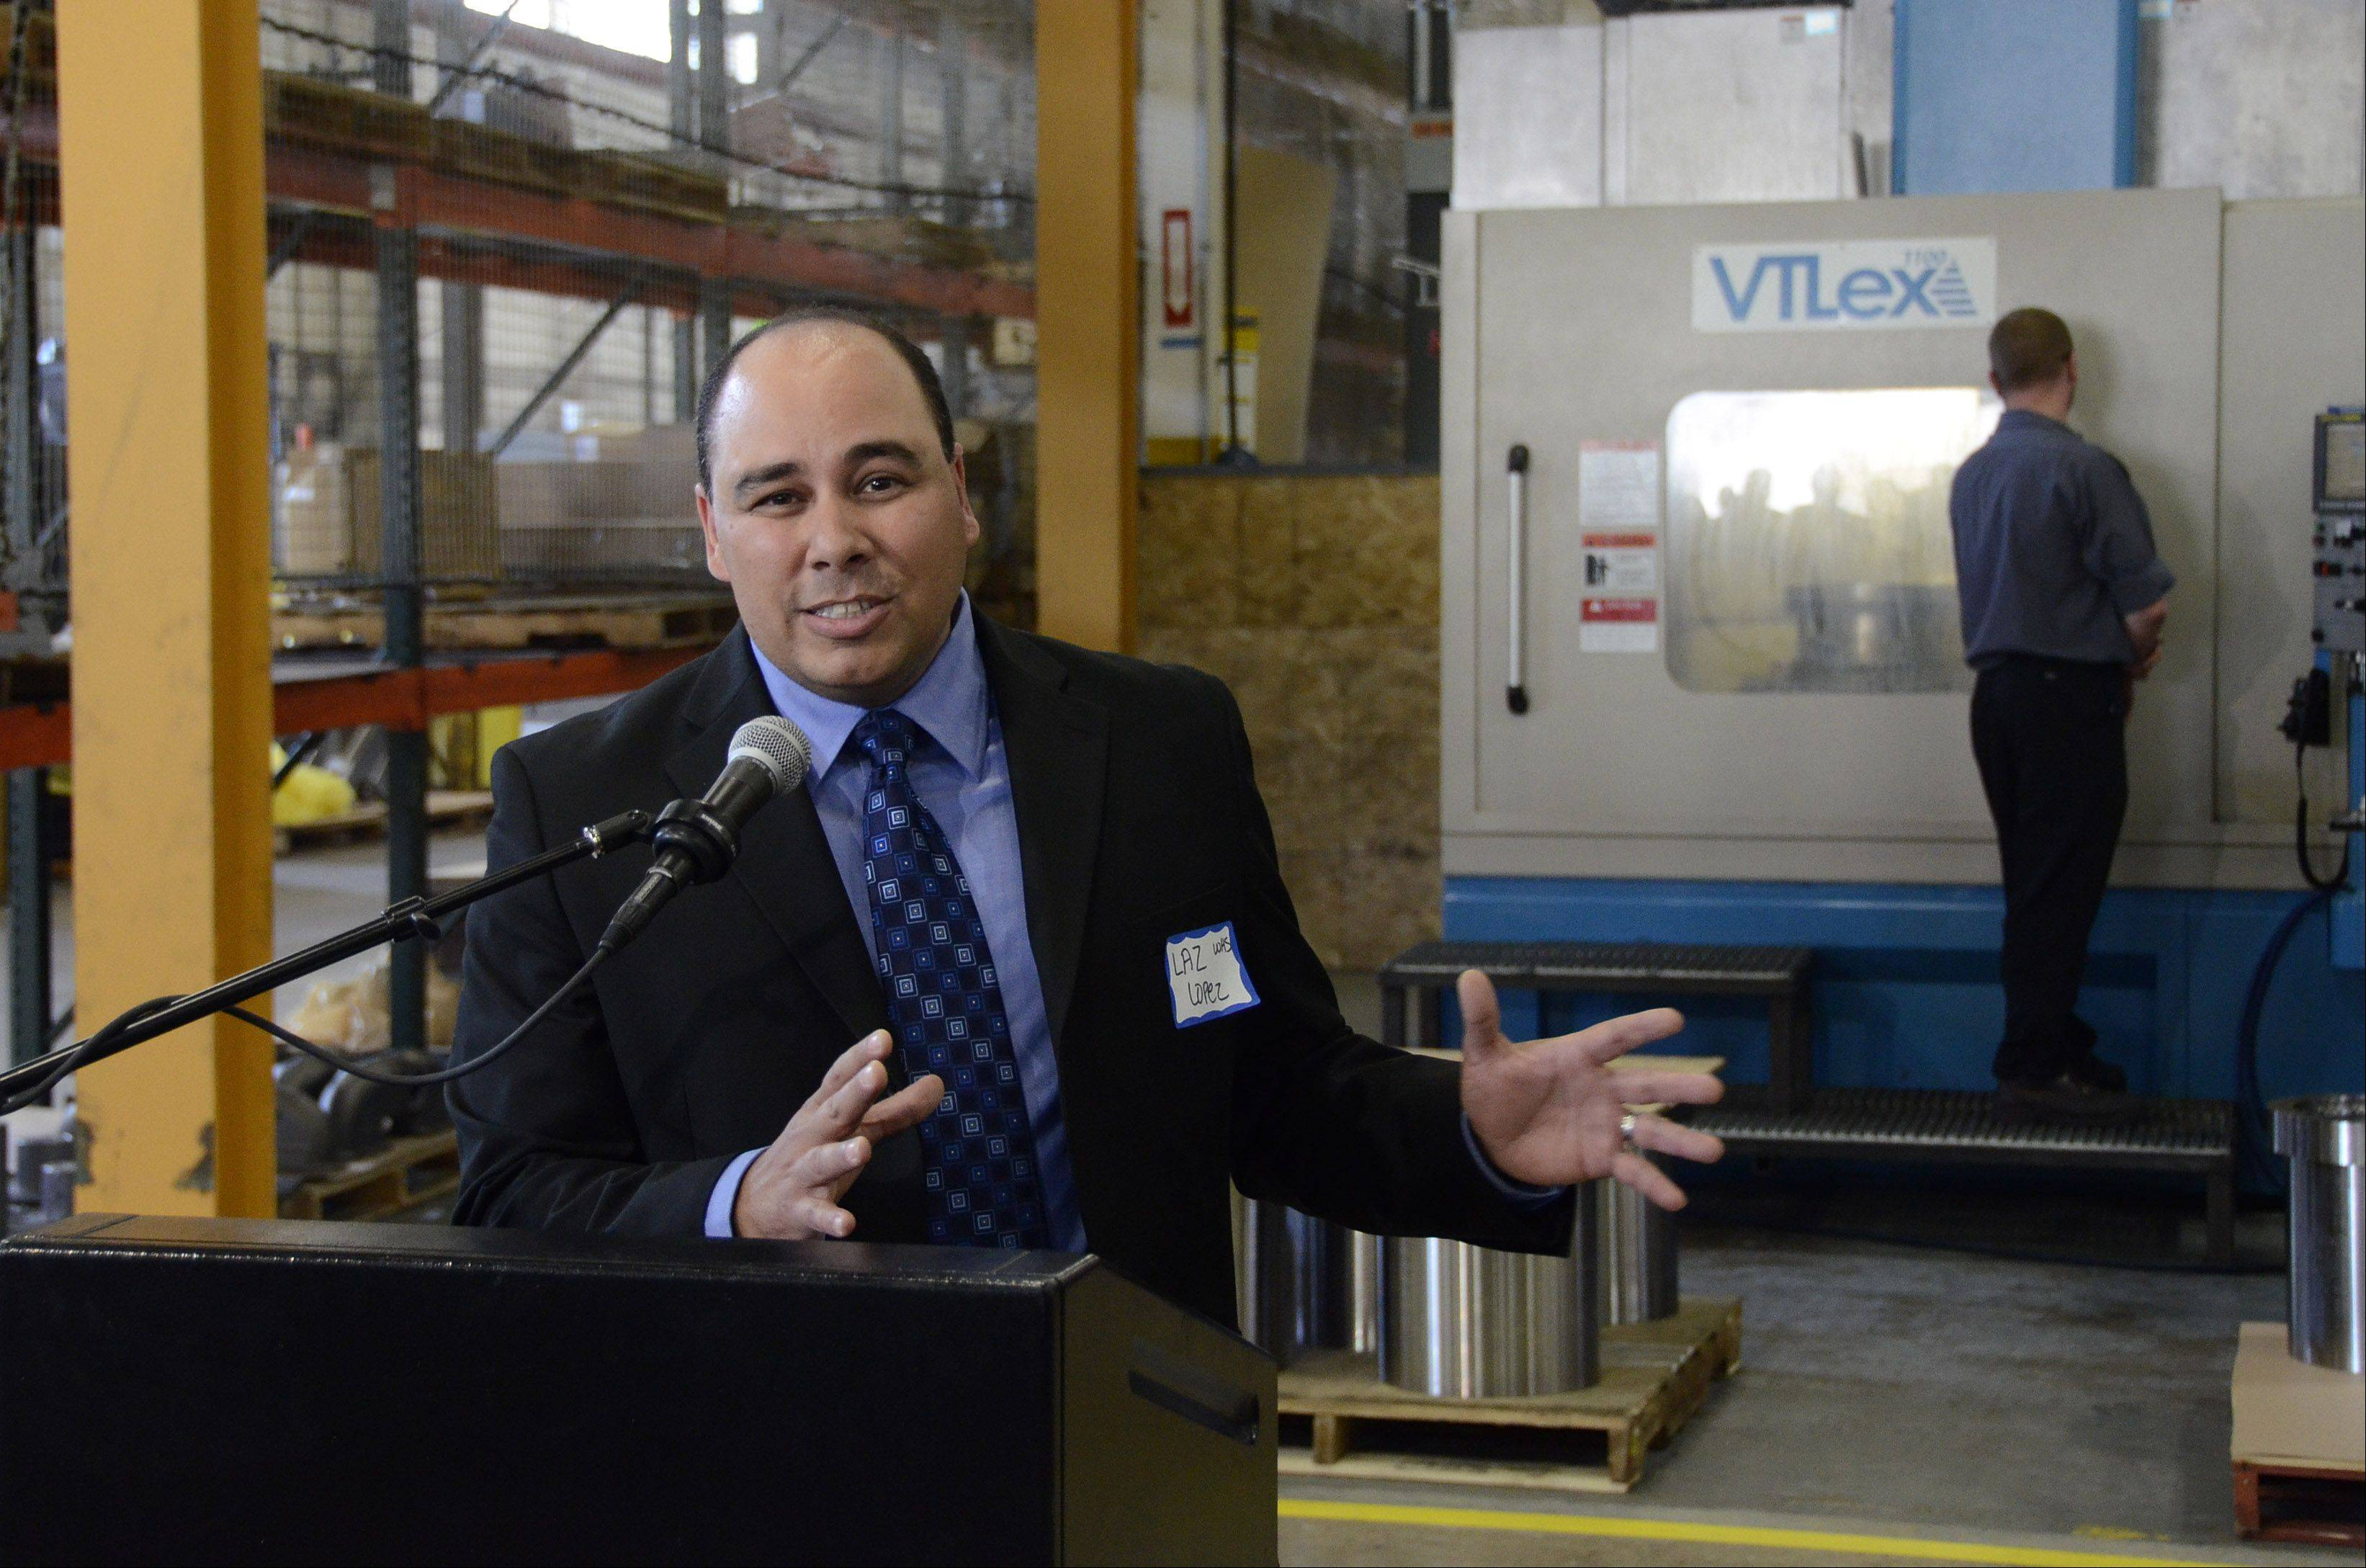 Wheeling High School Principal Laz Lopez speaks Wednesday at a news conference formally announcing the partnership between Harper College and more than 50 manufacturers for a new Advanced Manufacturing program. Behind him, an Acme Industries employee in Elk Grove Village works on a machine.